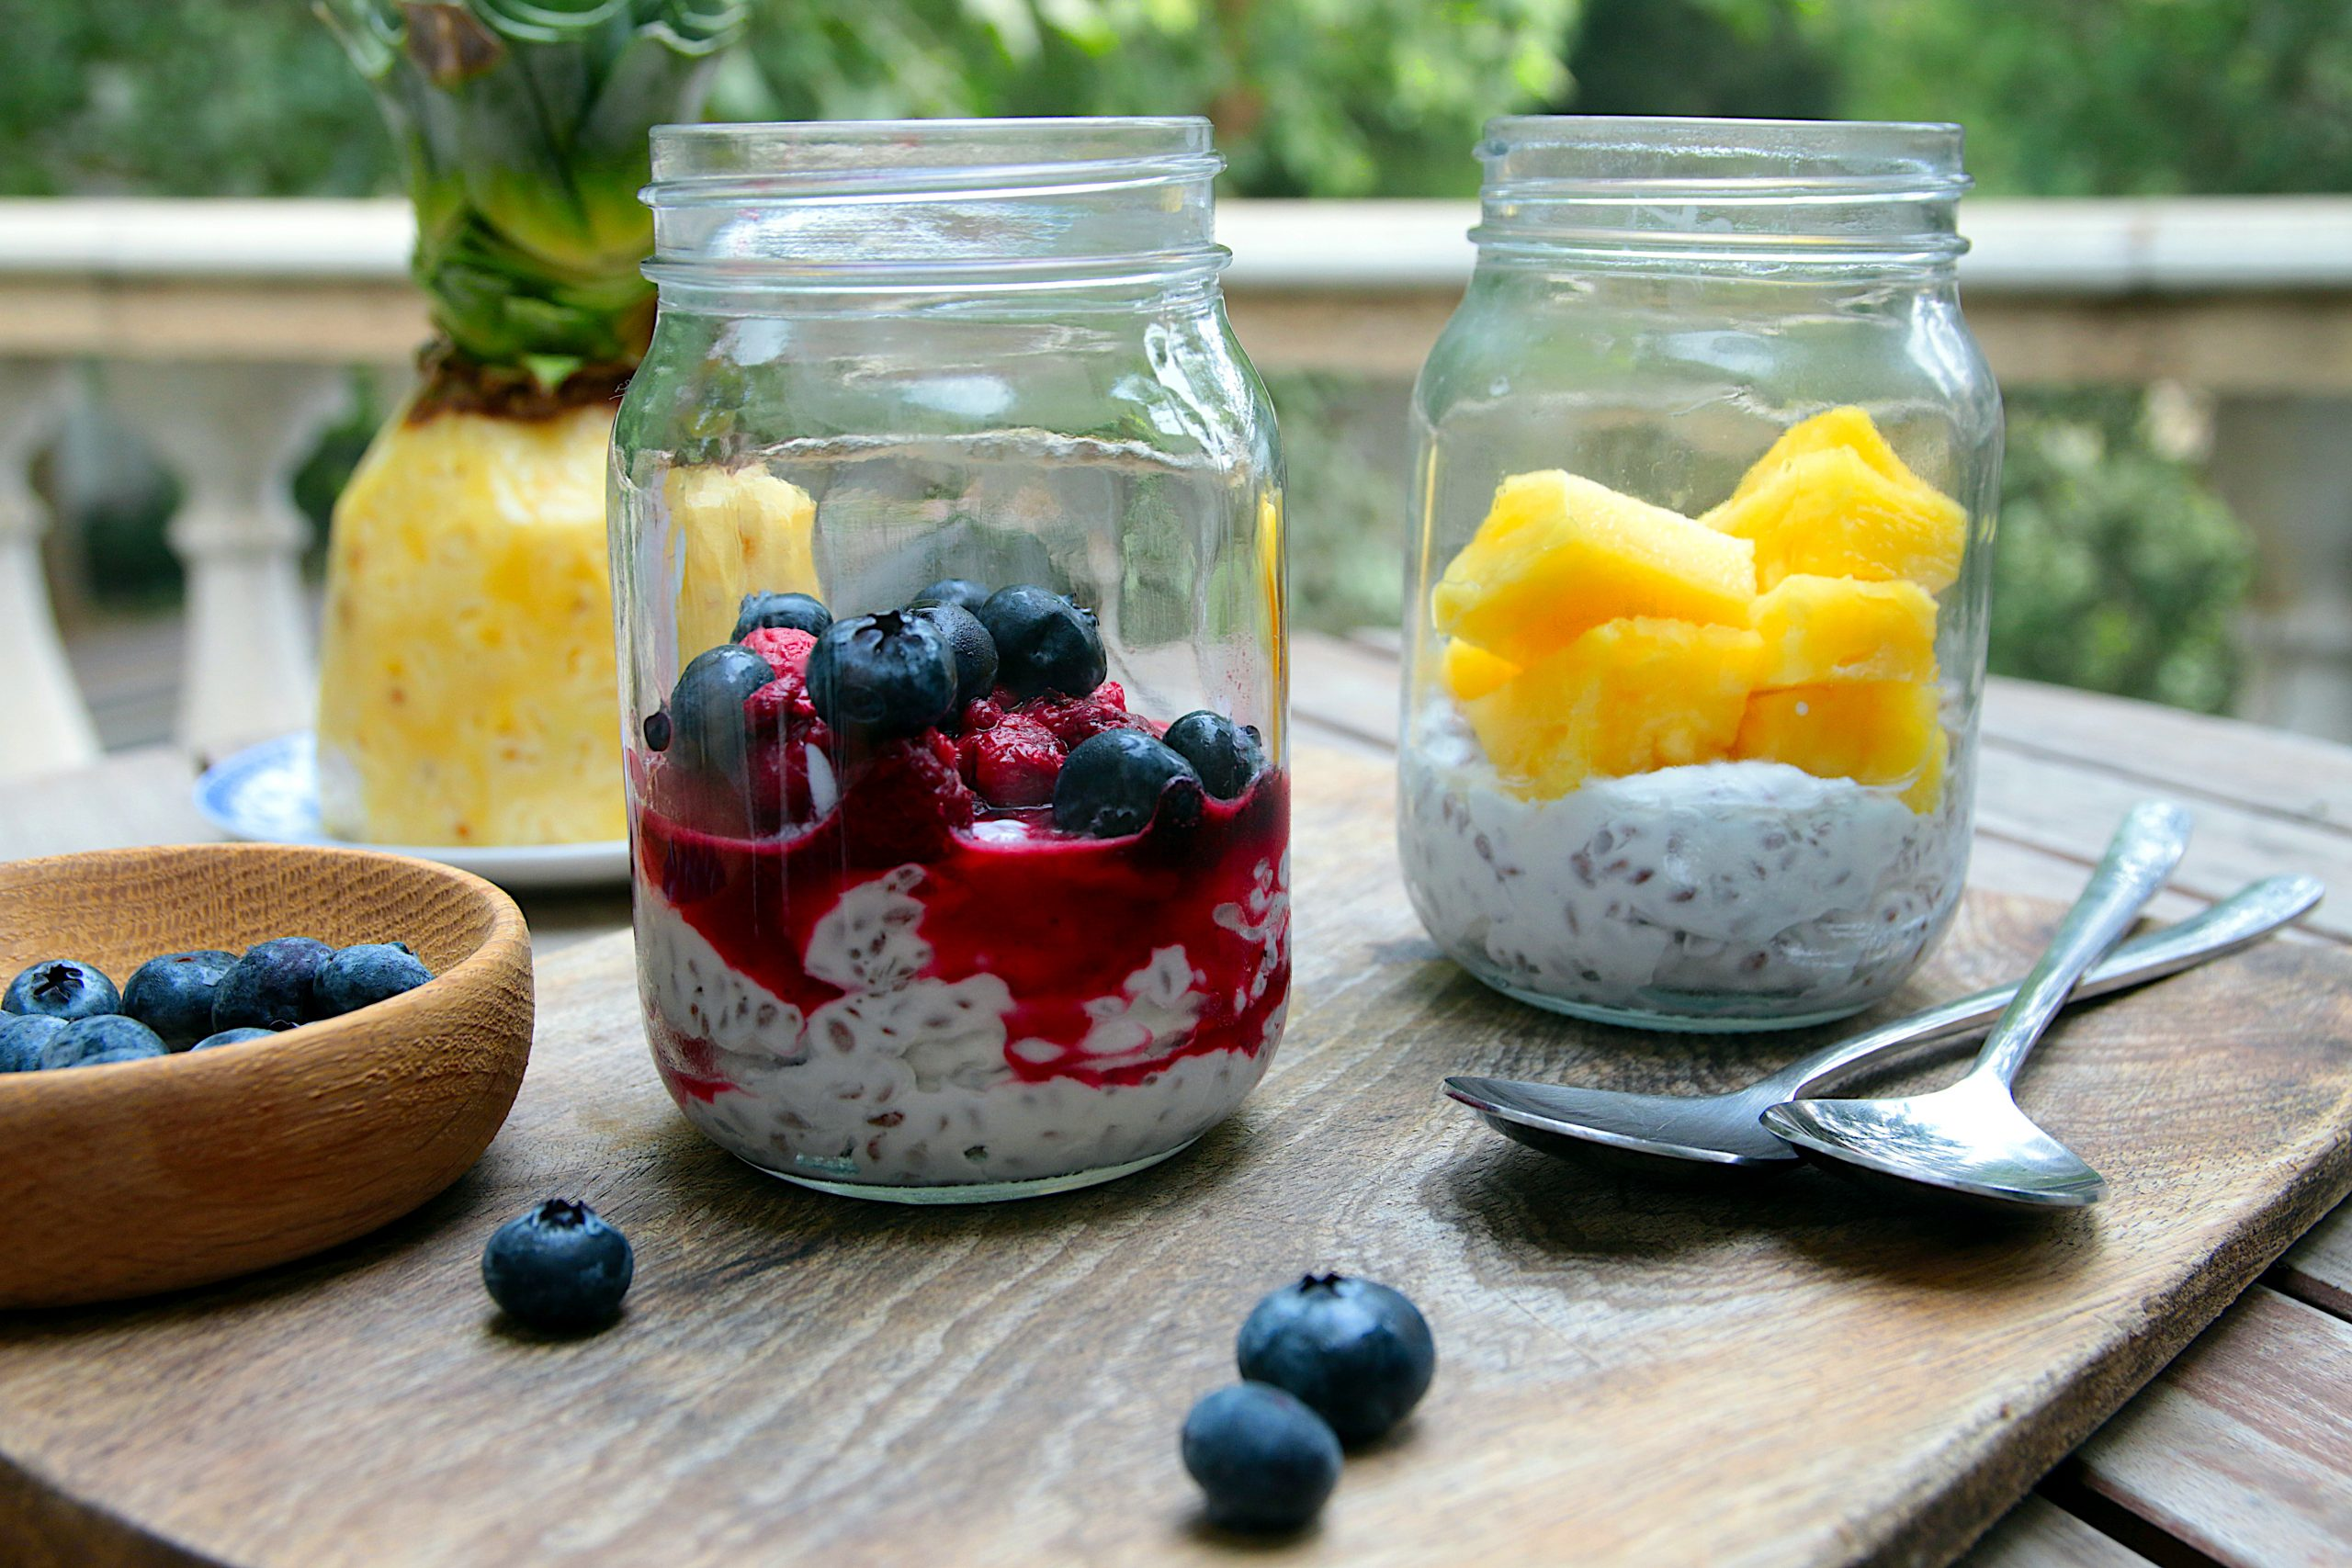 creamy coconut milk with seeds and fruit